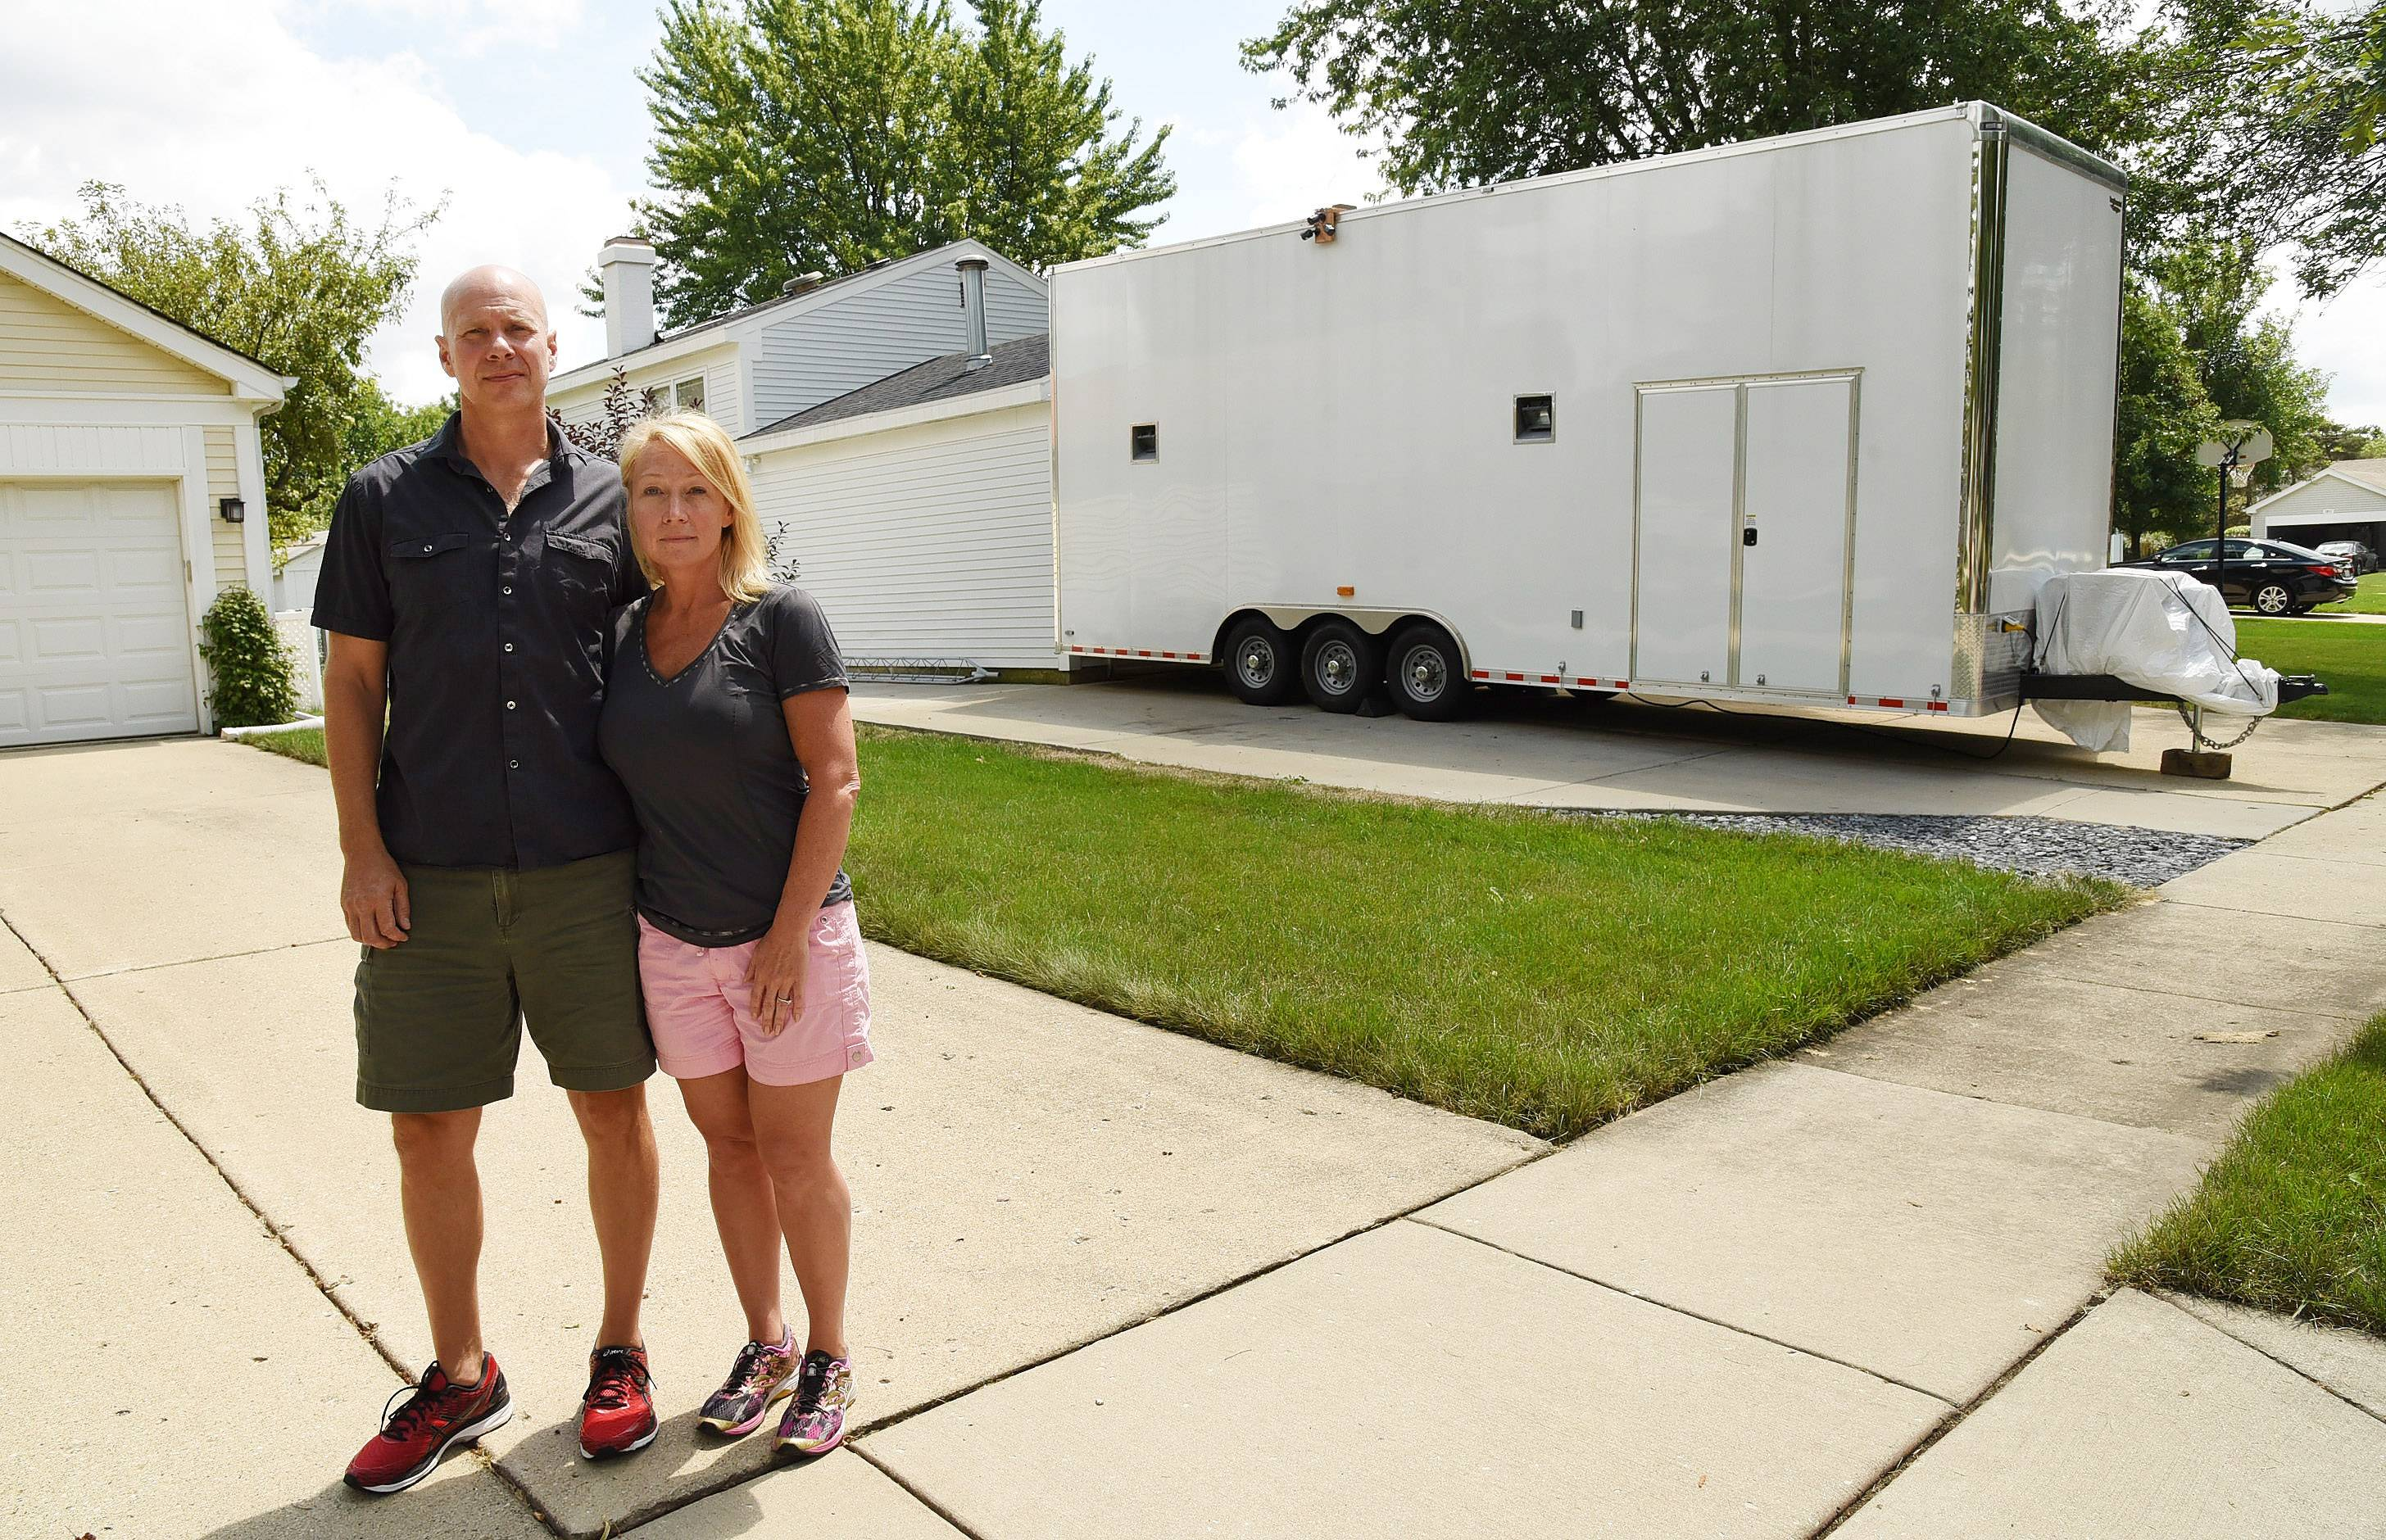 Trailer talk in Schaumburg on hold